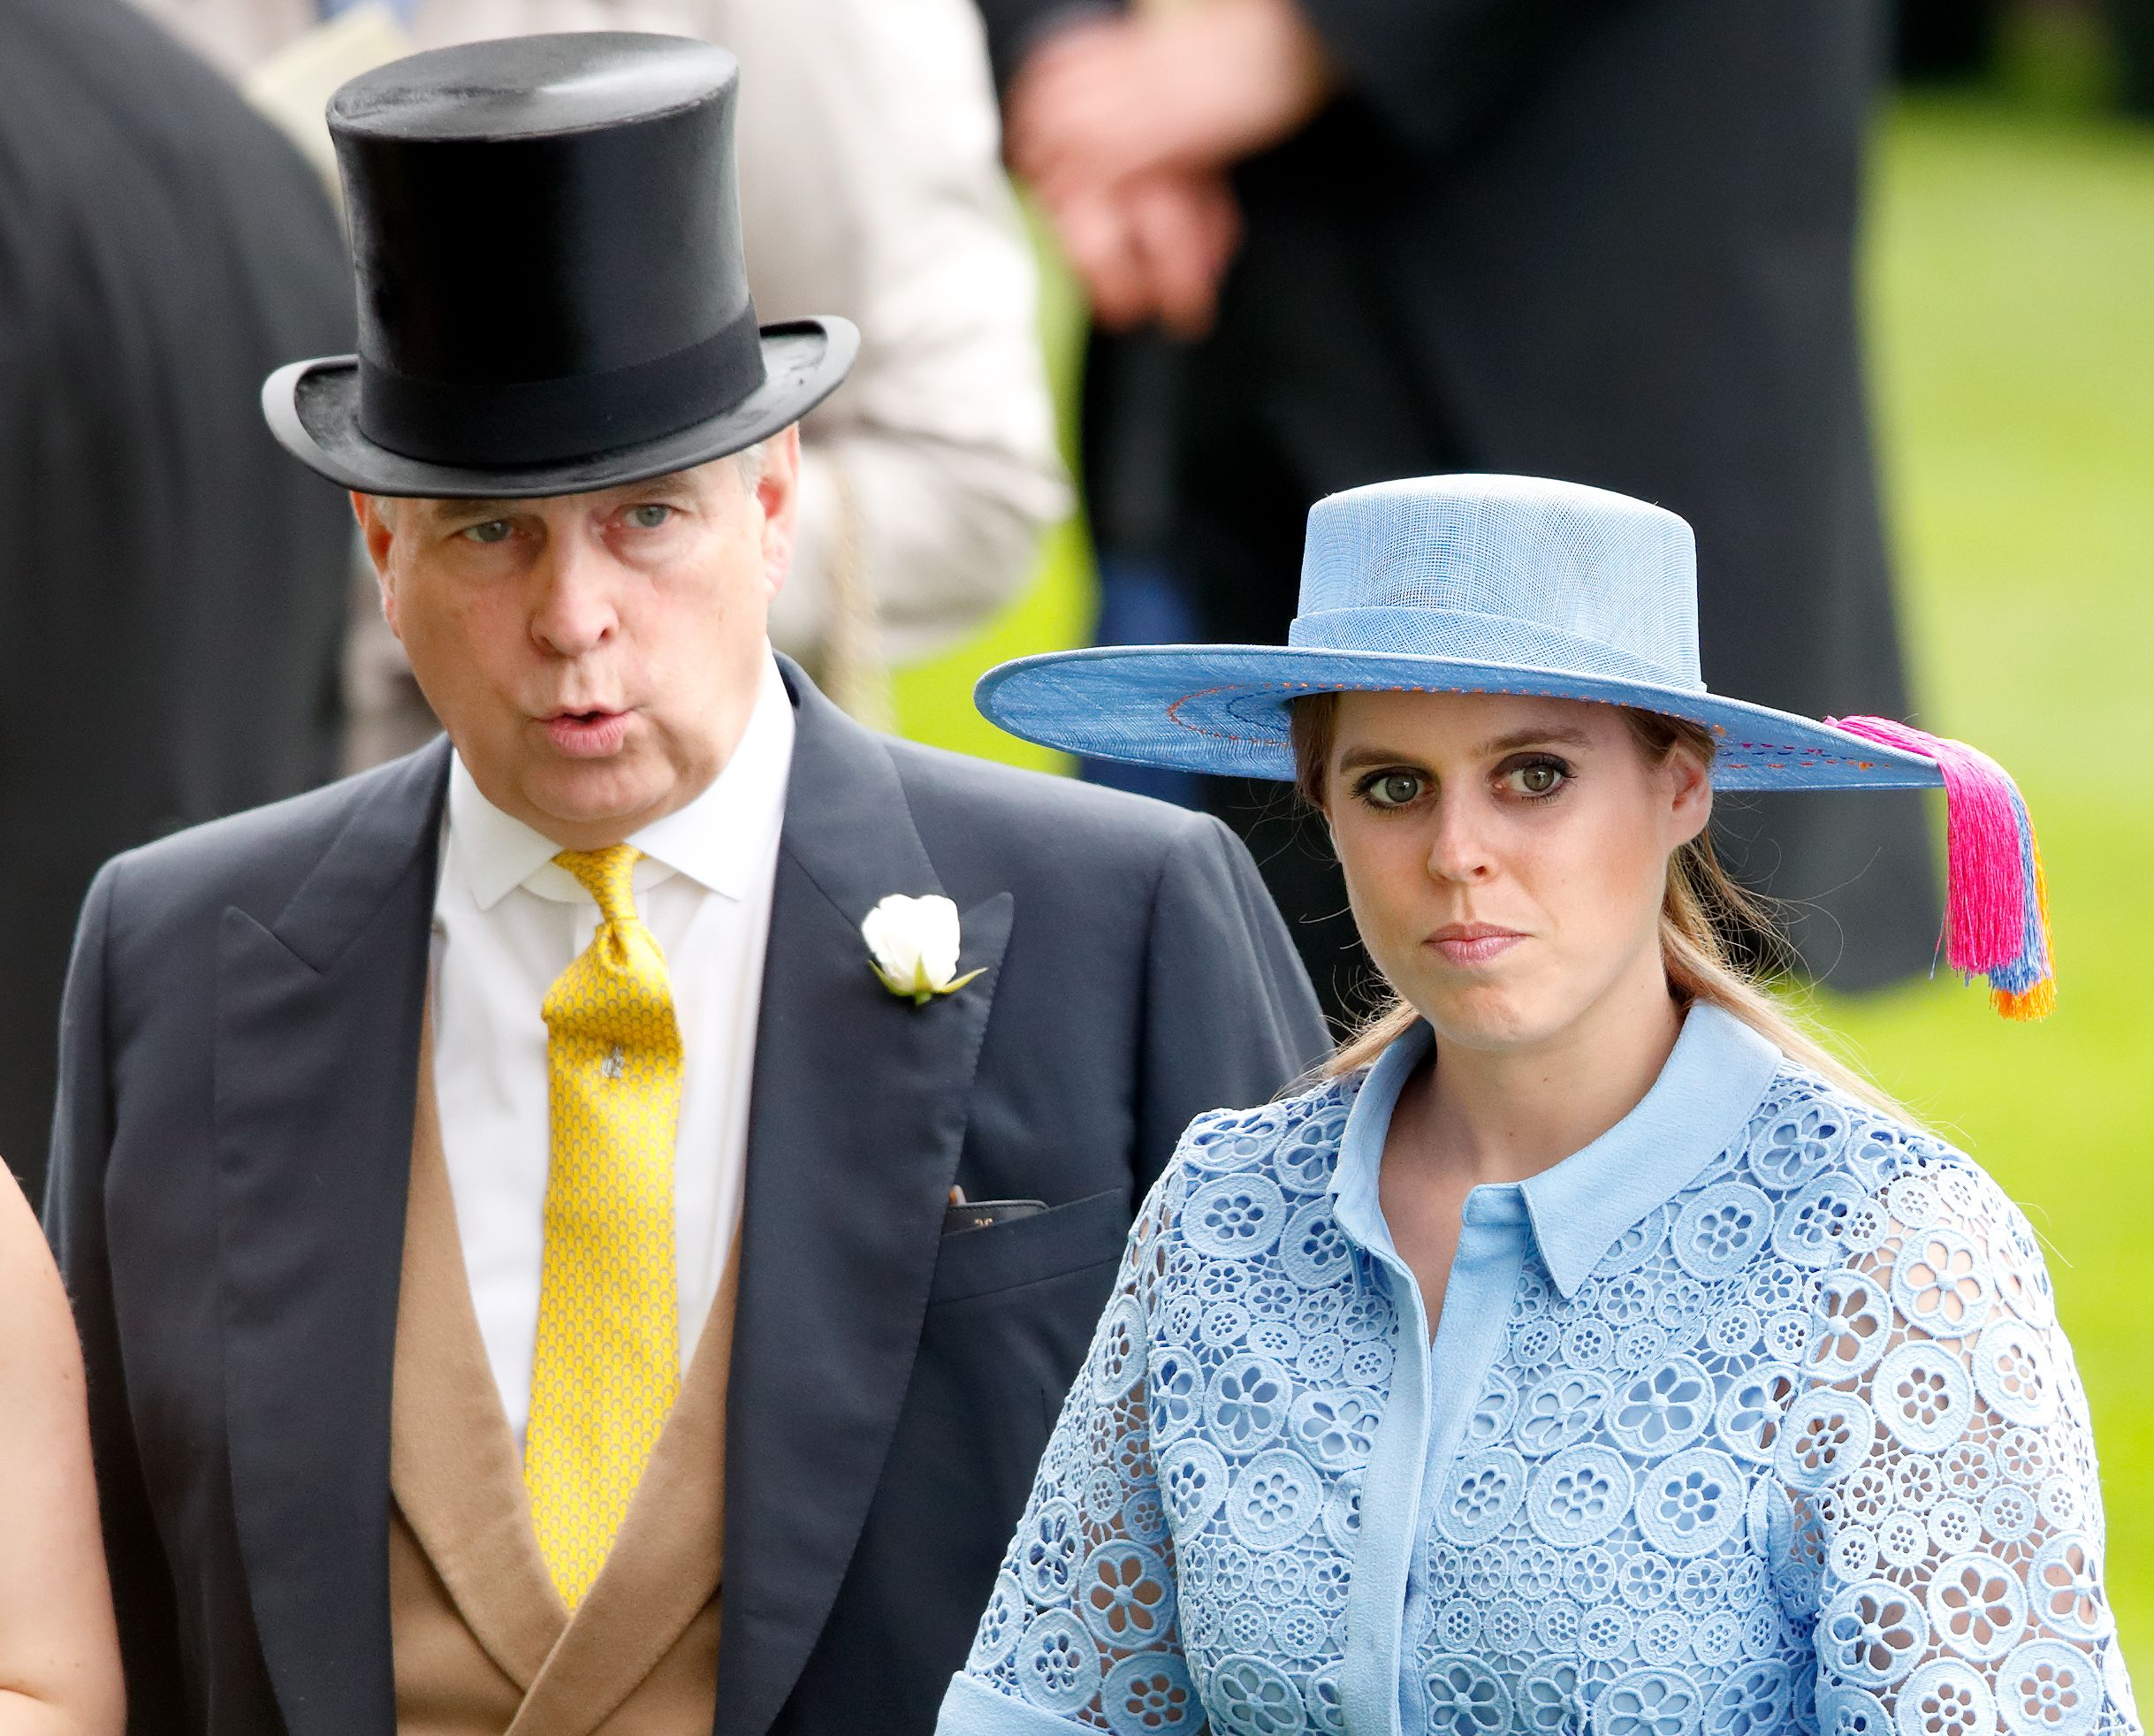 How the Prince Andrew scandal will affect Princess Beatrice's wedding